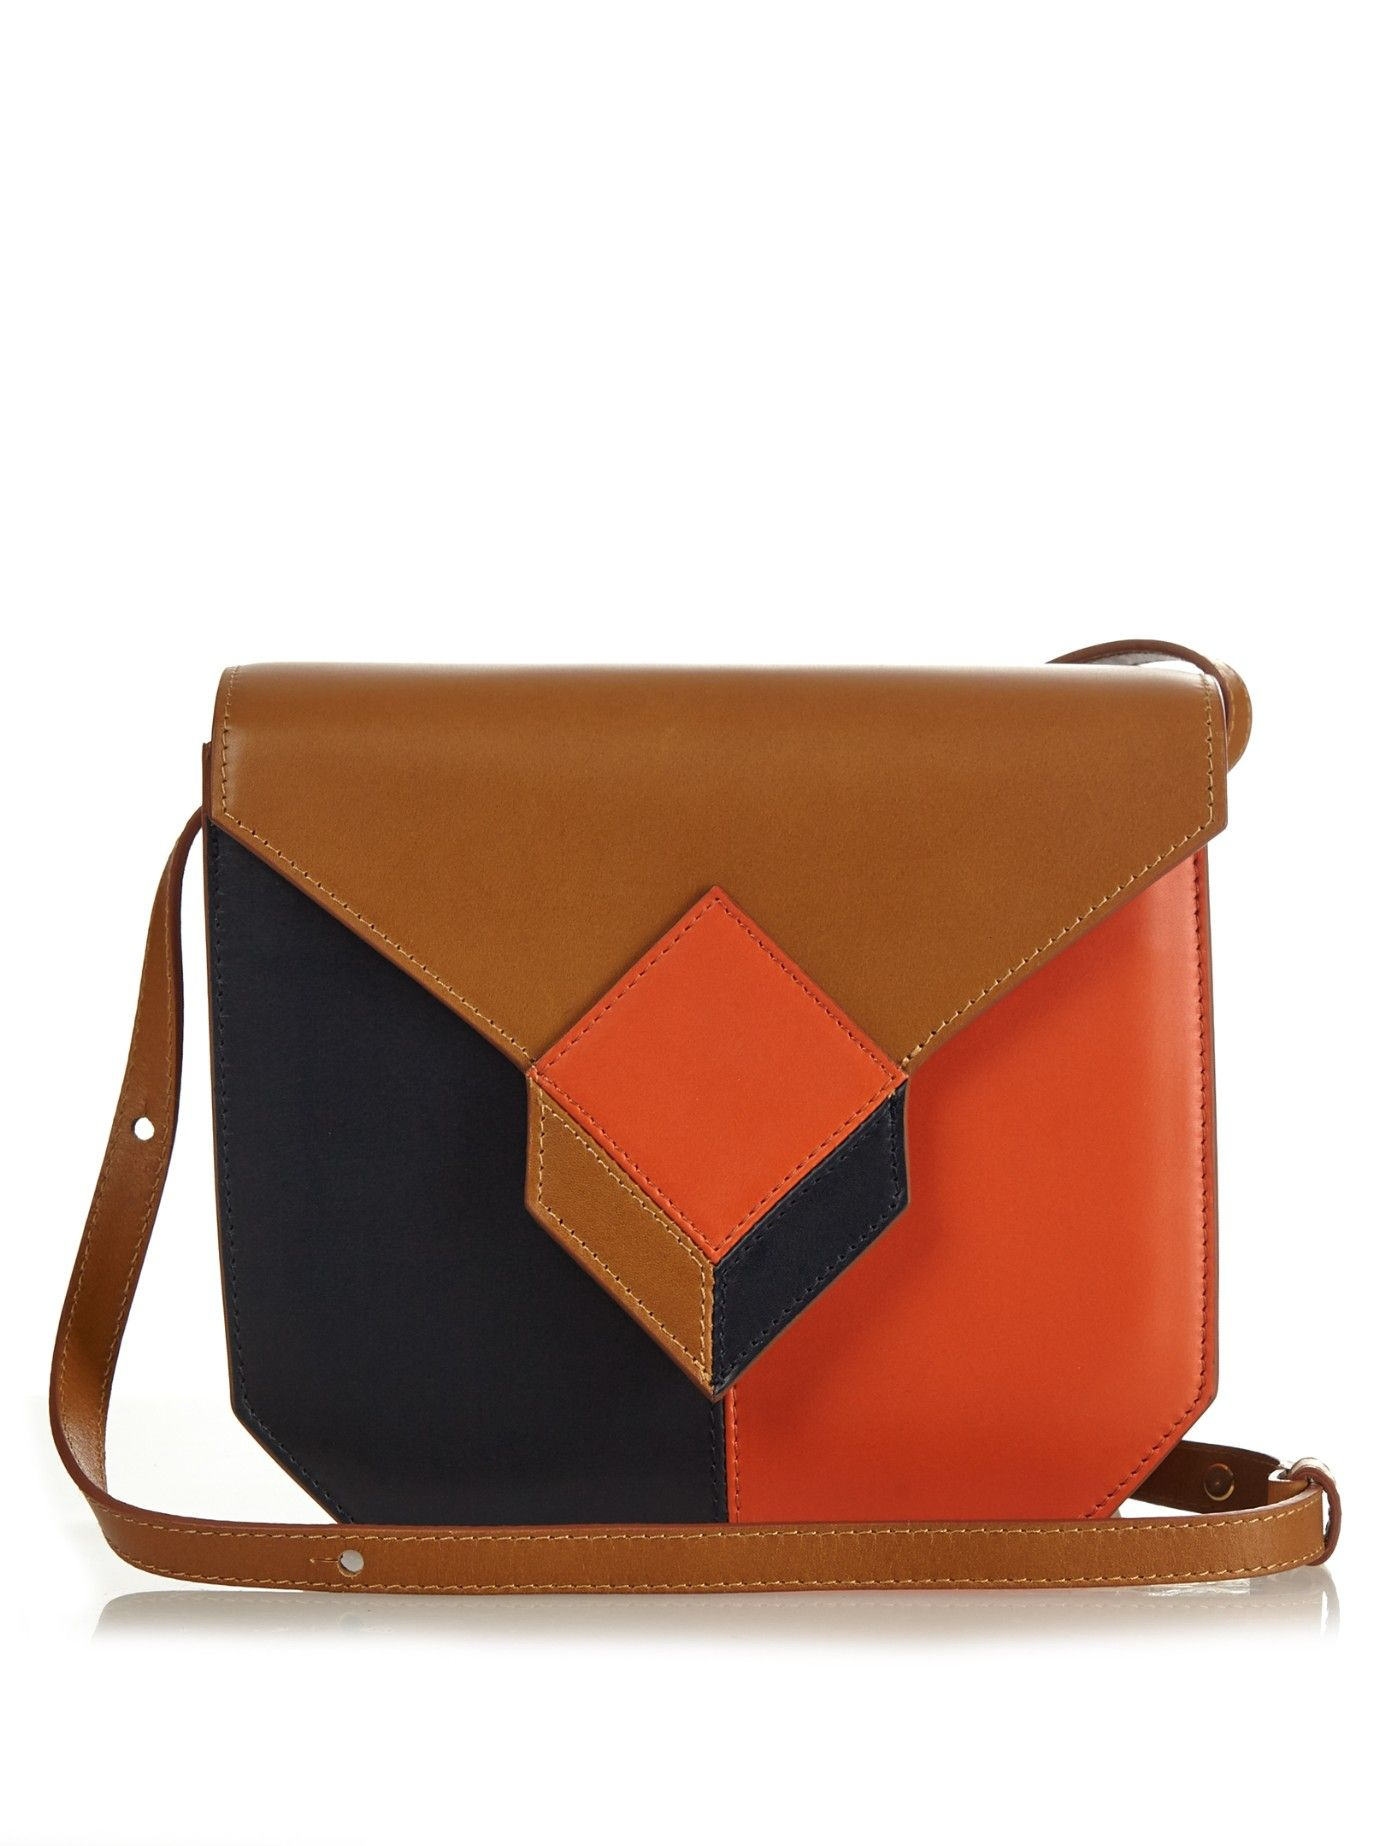 Prism Quilted crossbody bag Pierre Hardy RMm9f